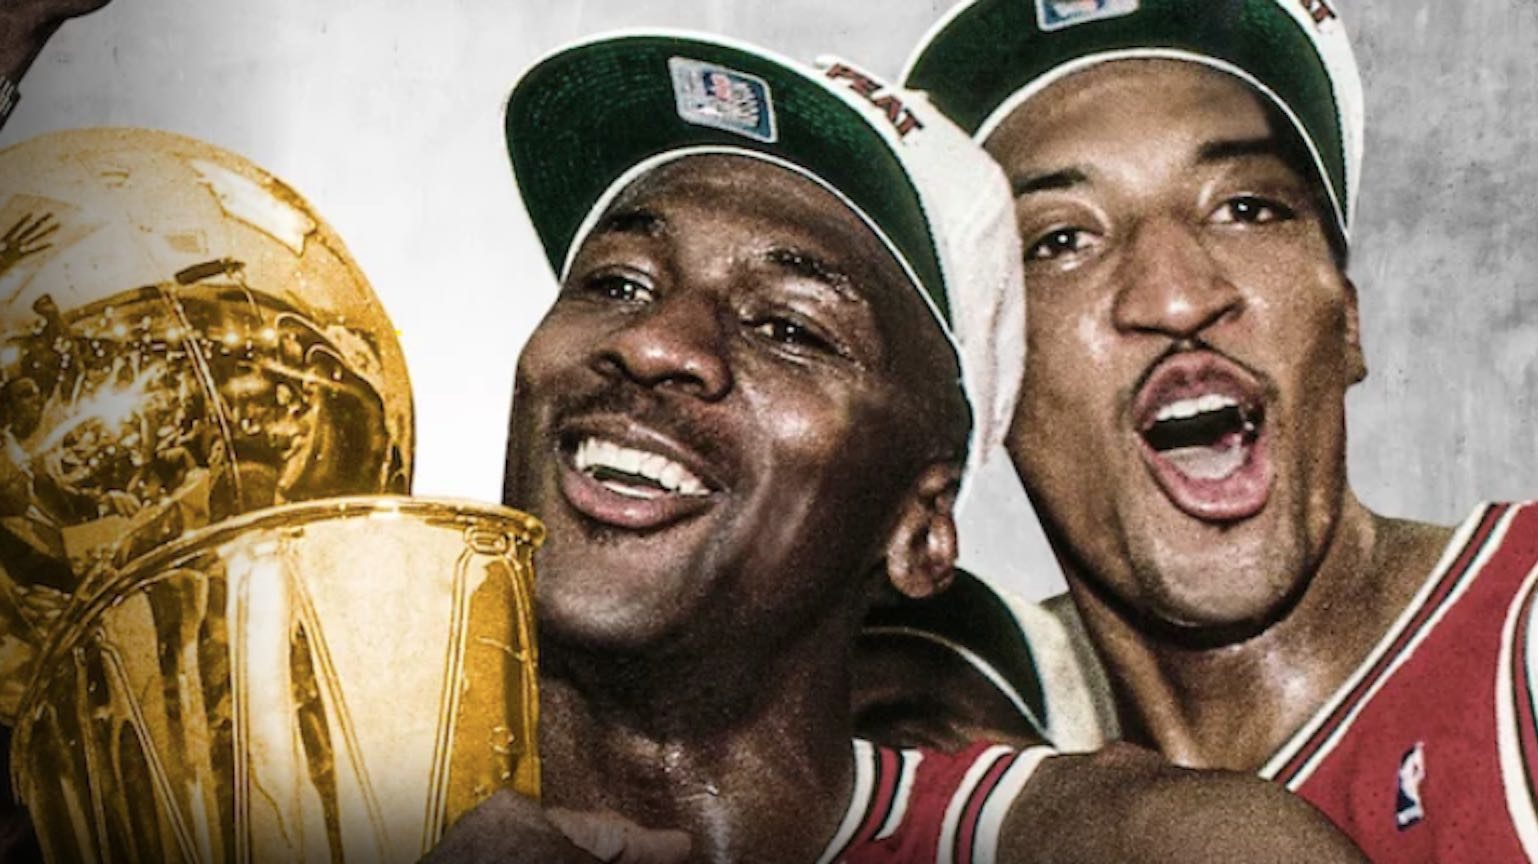 Michael Jordan and Scottie Pippen celebrating with Larry O'Brien trophy